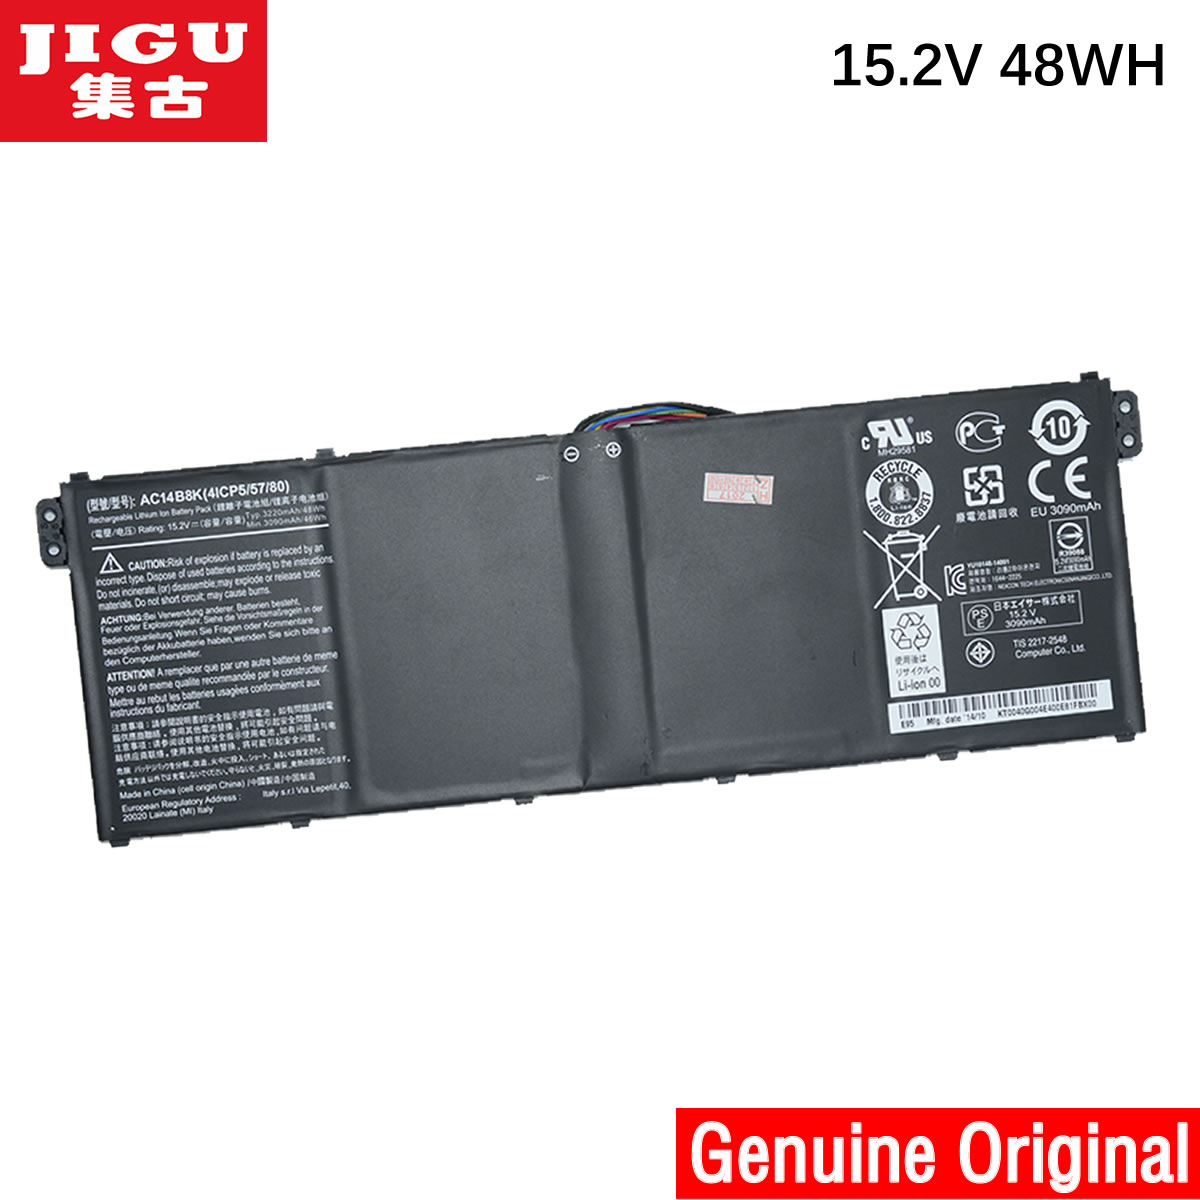 JIGU Original Laptop Battery AC14B8K FOR Acer Aspire E3-111 E3-112 CB3-111 CB5-311 ES1-511 ES1-512 E5-771G V3-111 V3-371 ES1-711 10pcs lot 9w led wall washer wash light lines garden yard outdoor waterproof square flood landscape halogen down lighting lamp